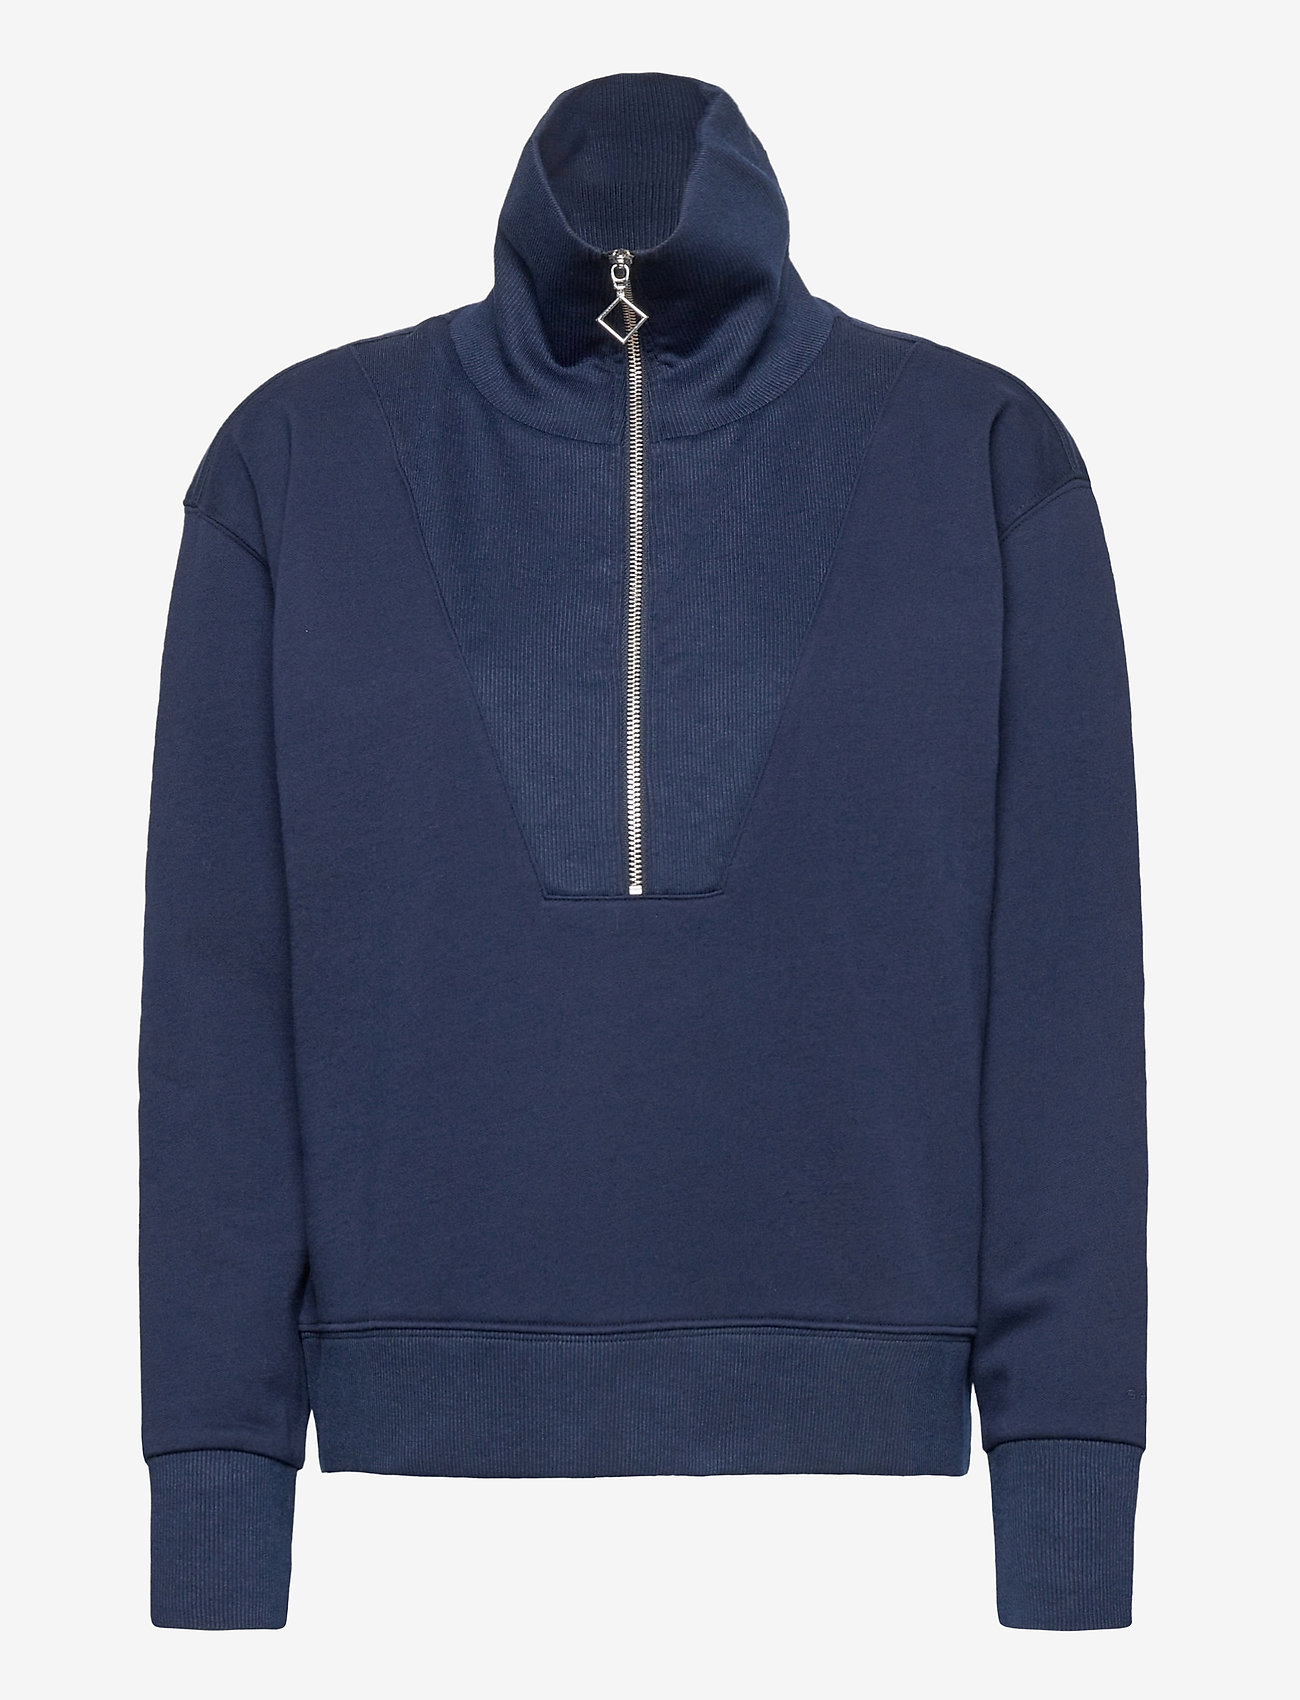 GANT - D1. HALF ZIP SWEAT - sweatshirts - evening blue - 0